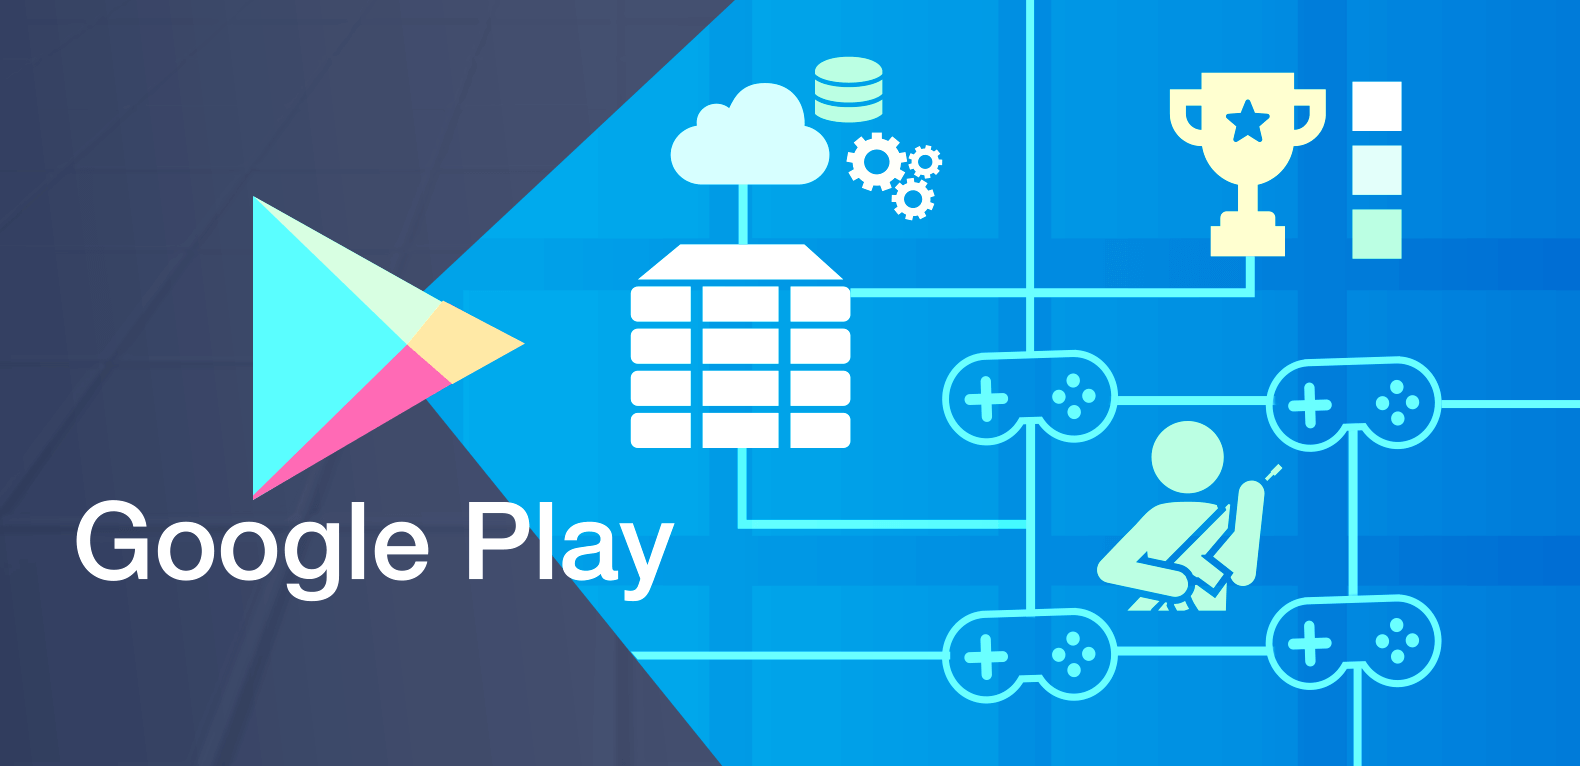 Hire Android game developers for Google Play Games